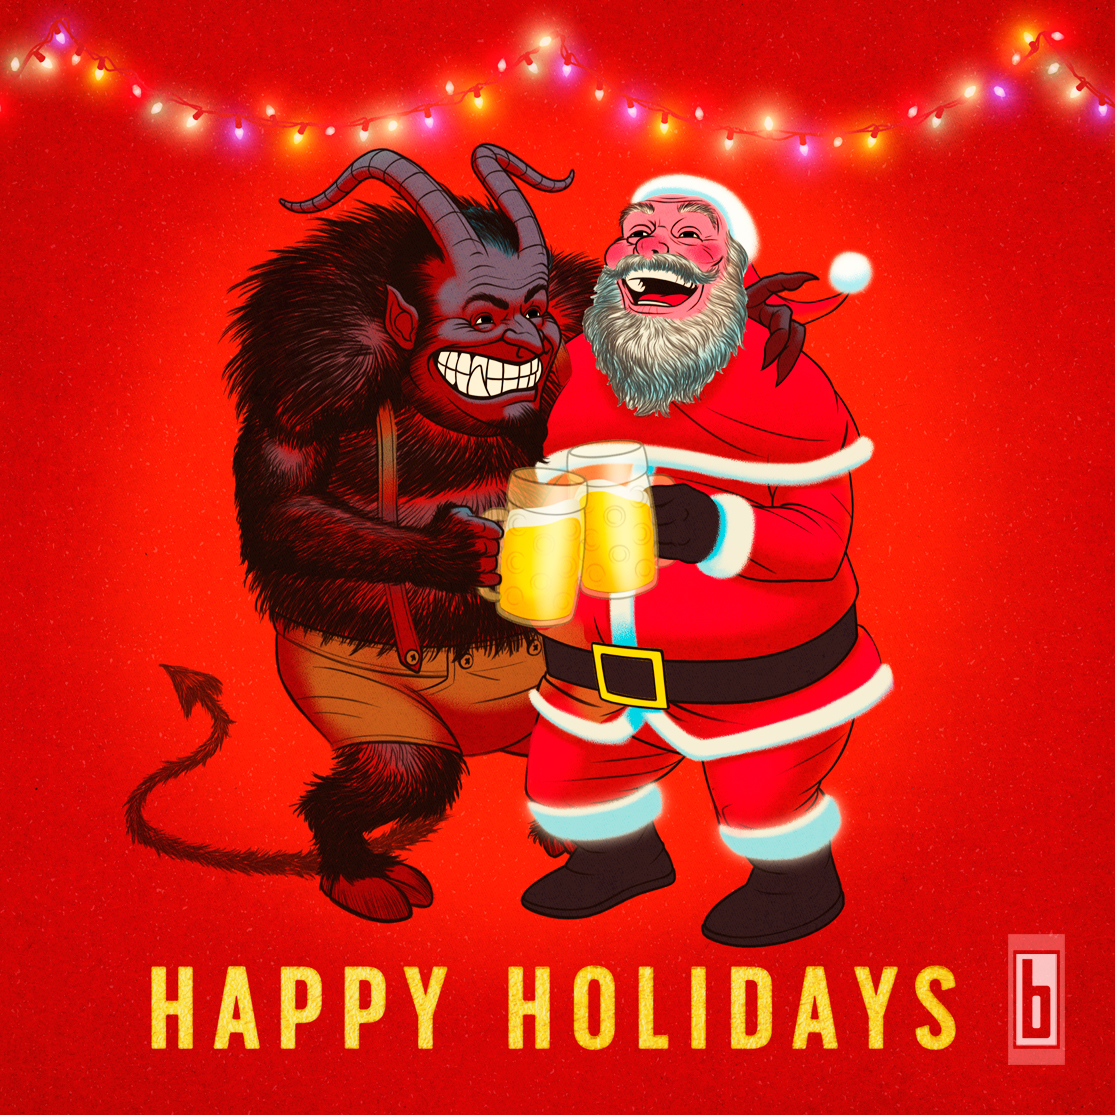 Krampus & Santa Happy Holidays Full